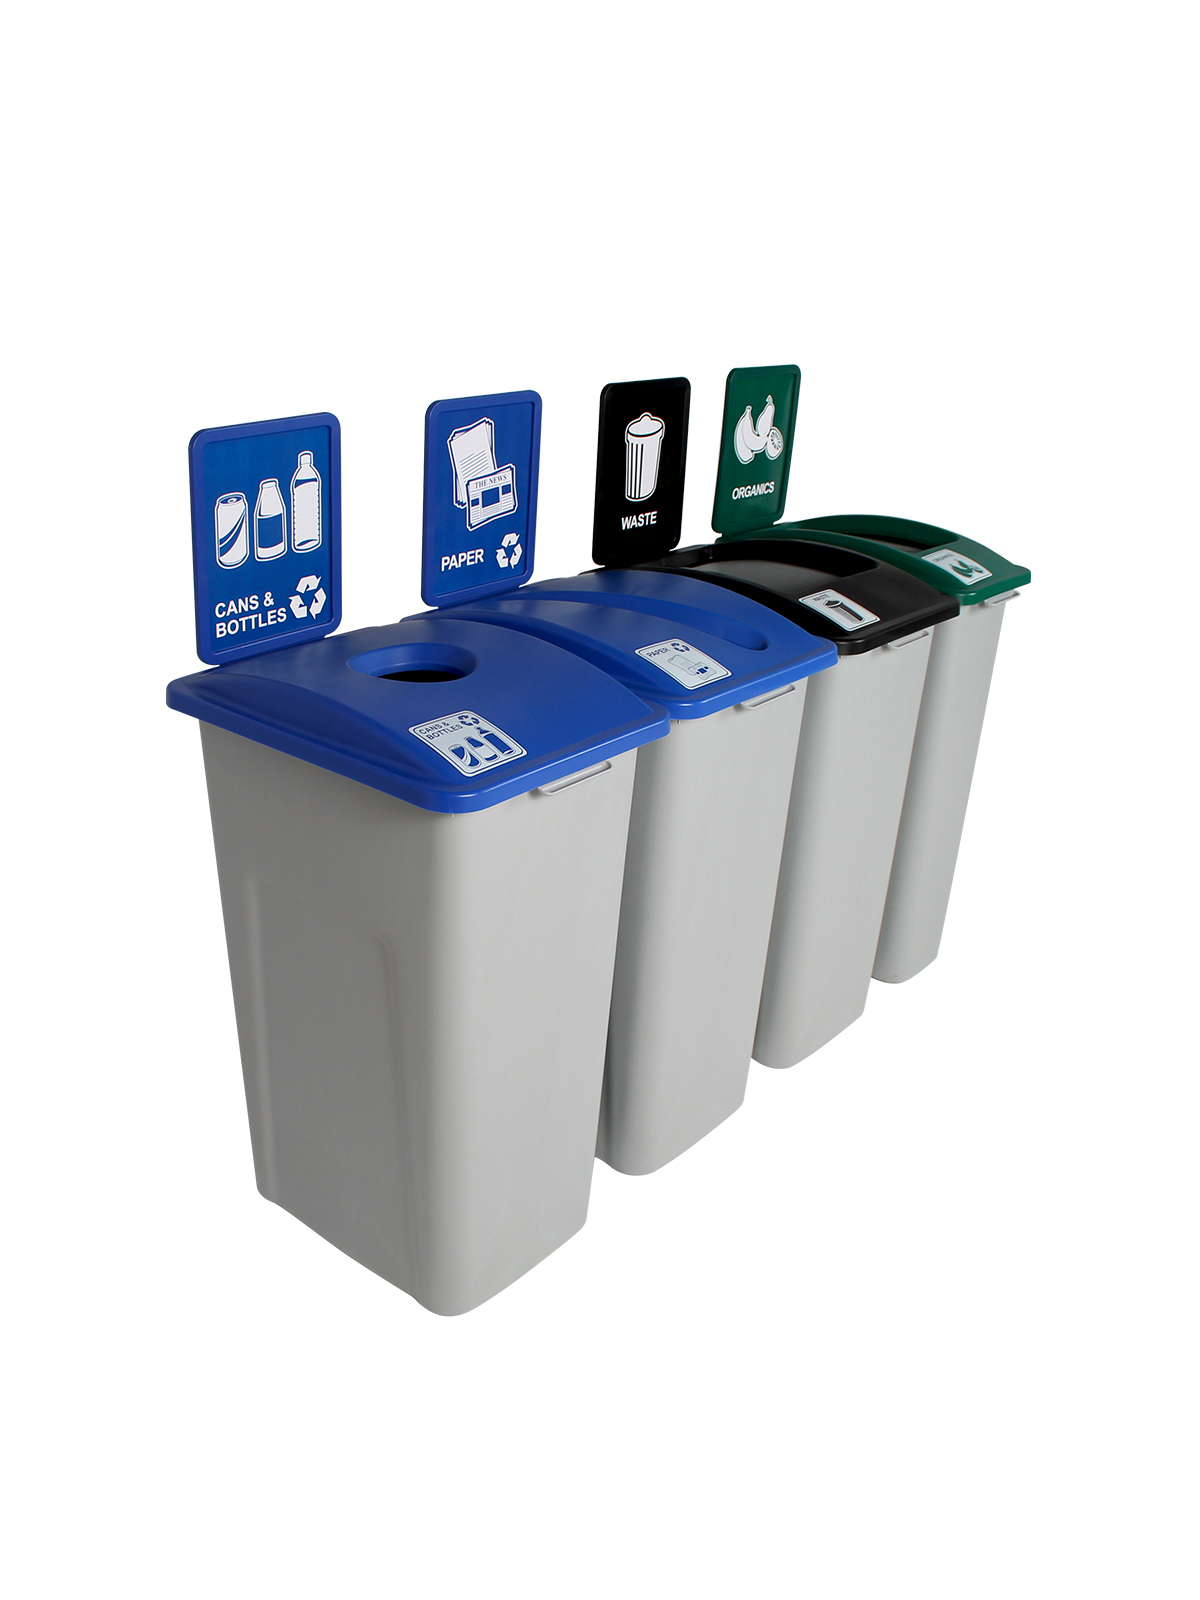 WASTE WATCHER XL - Quad - Cans & Bottles-Paper-Organics-Waste - Circle-Slot-Full - Grey-Blue-Blue-Green-Black